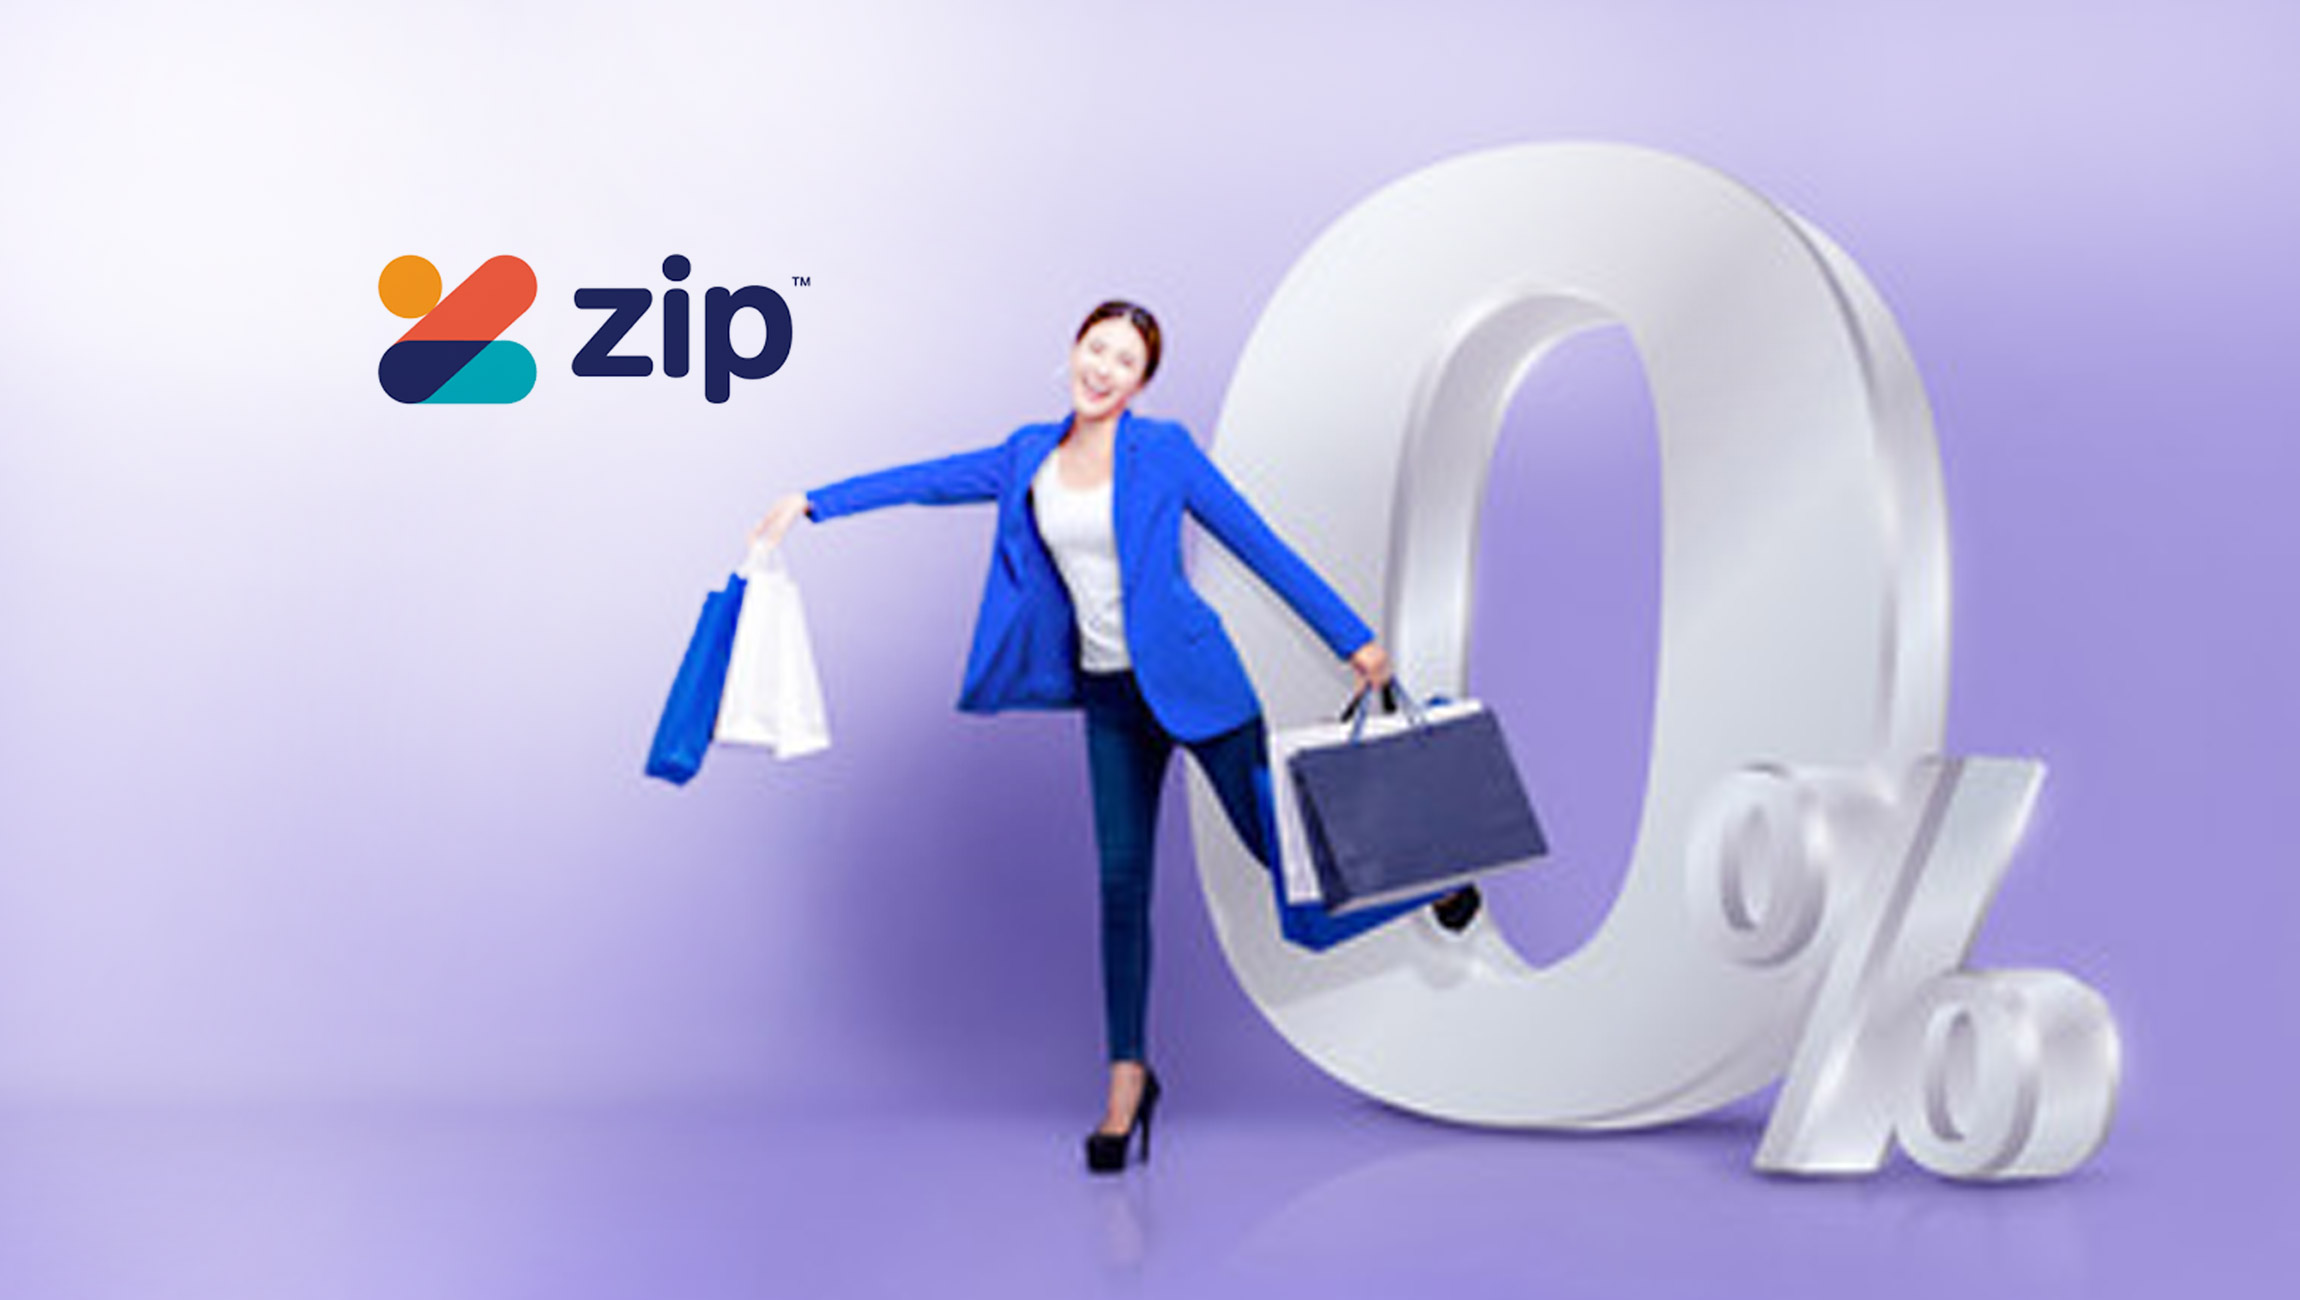 Australian Businesses Win Customers With Interest-Free Payment Method According To Zip